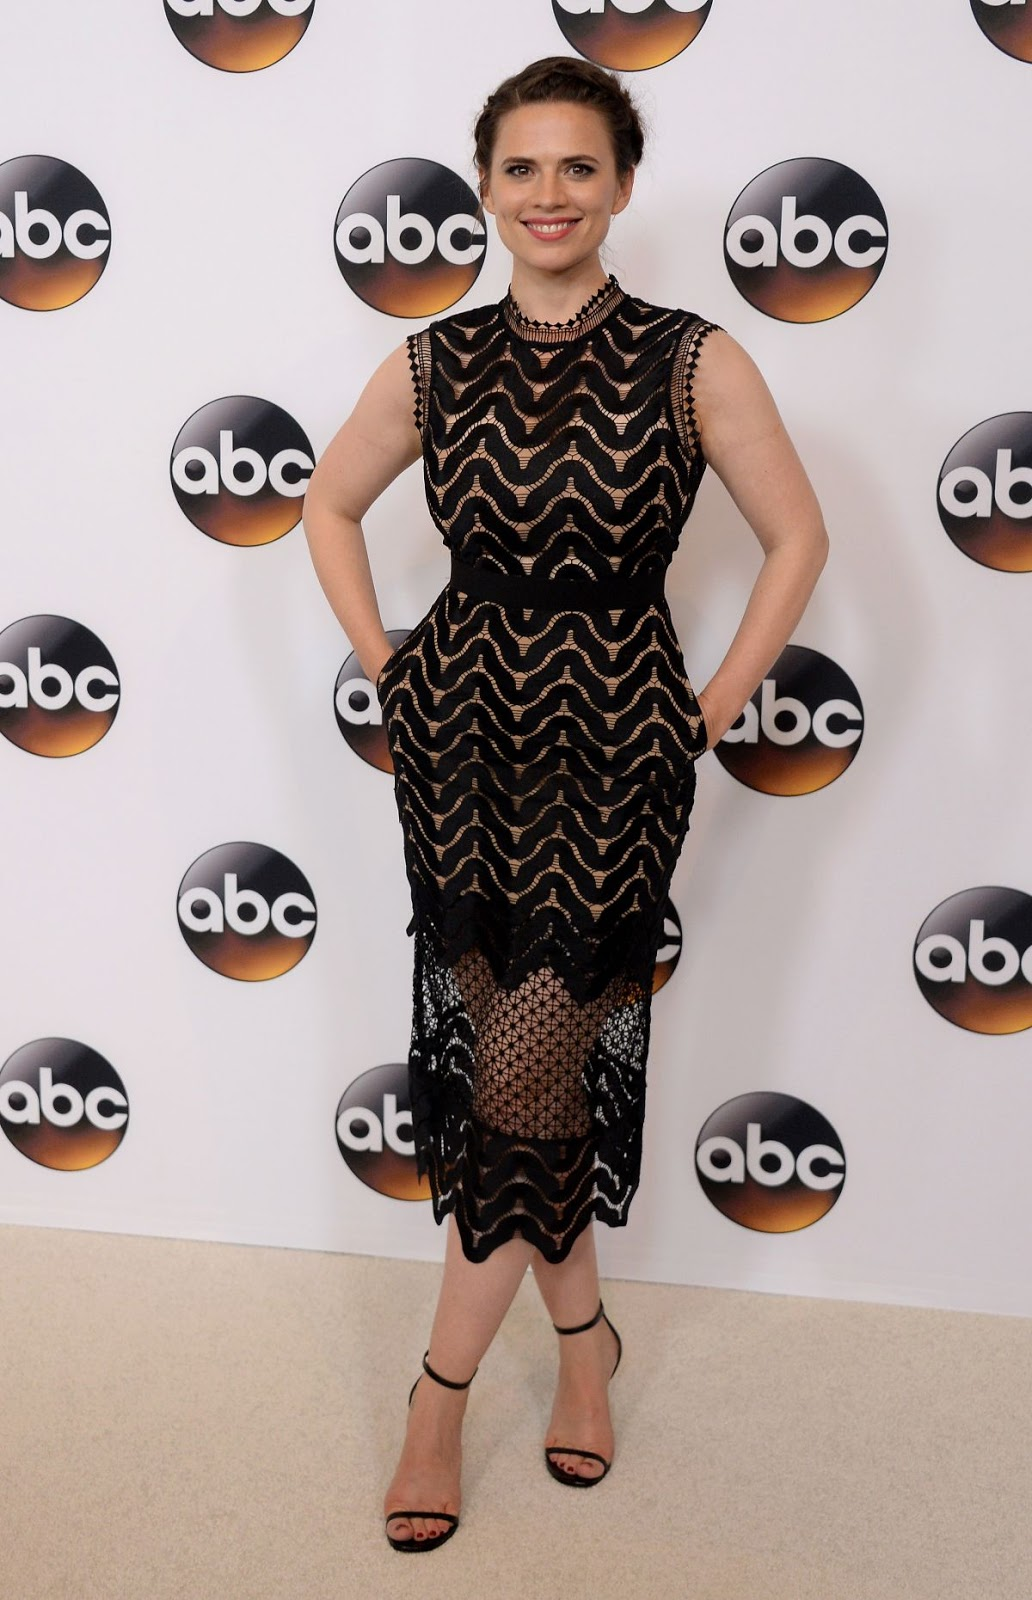 Marvel Comics actress Hayley Atwell at Disney ABC Television Tca Summer Press Tour in Beverly Hills